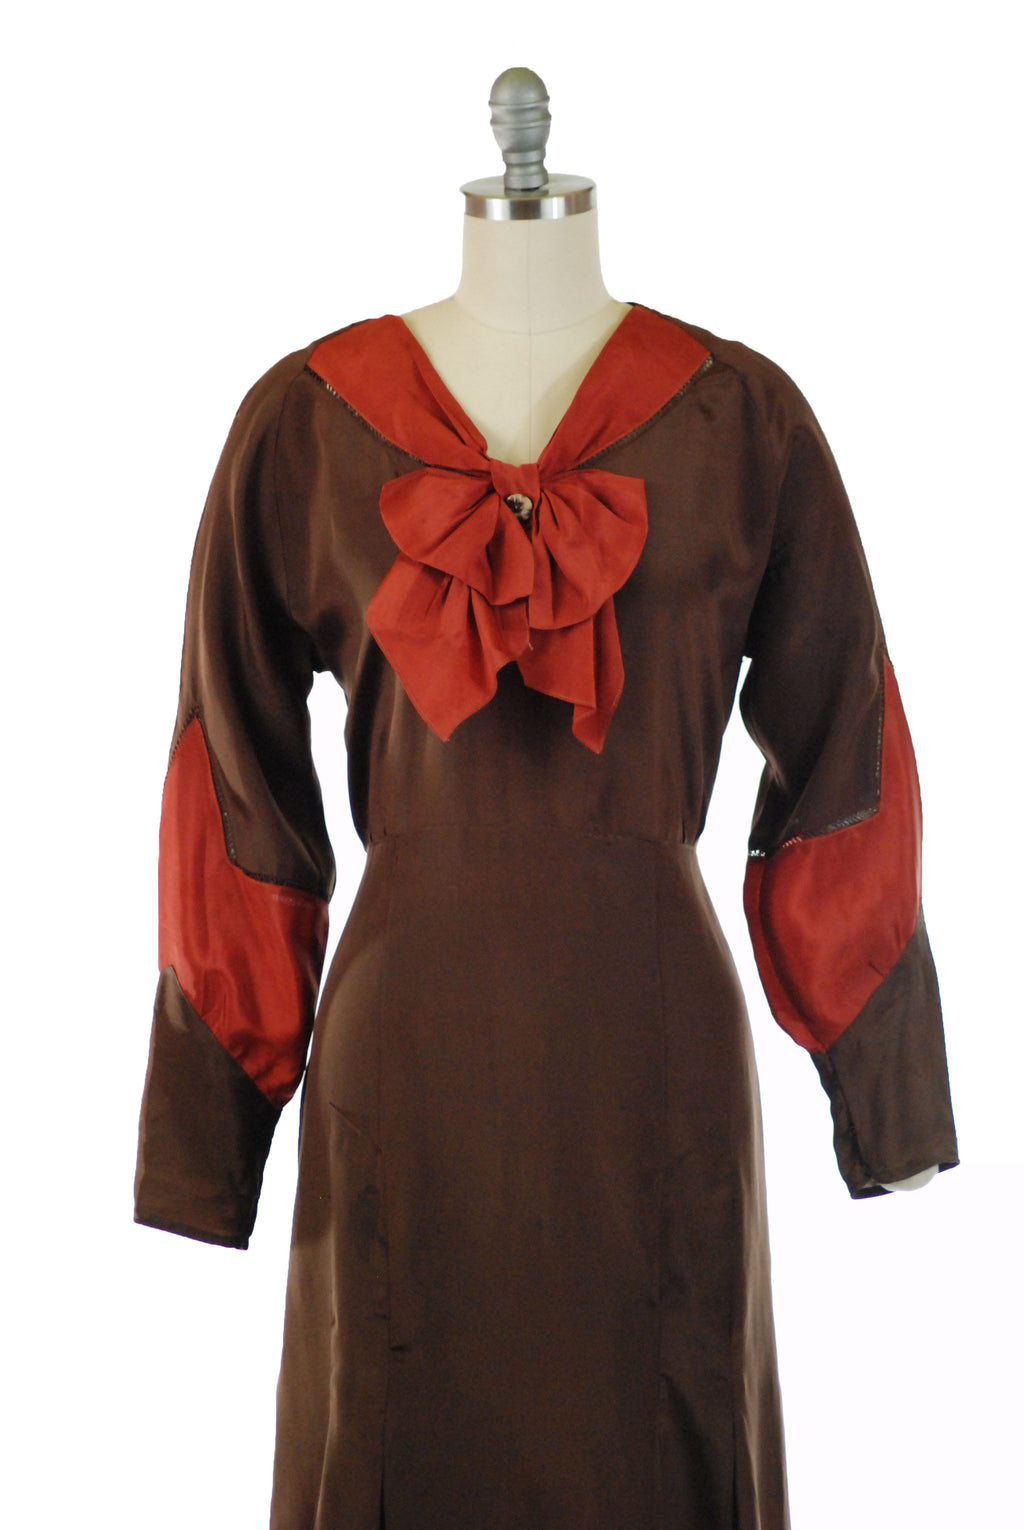 Early 1930s (c. 1930) Brown and Rust Colored Silk de Chine Dress with Bow Accent